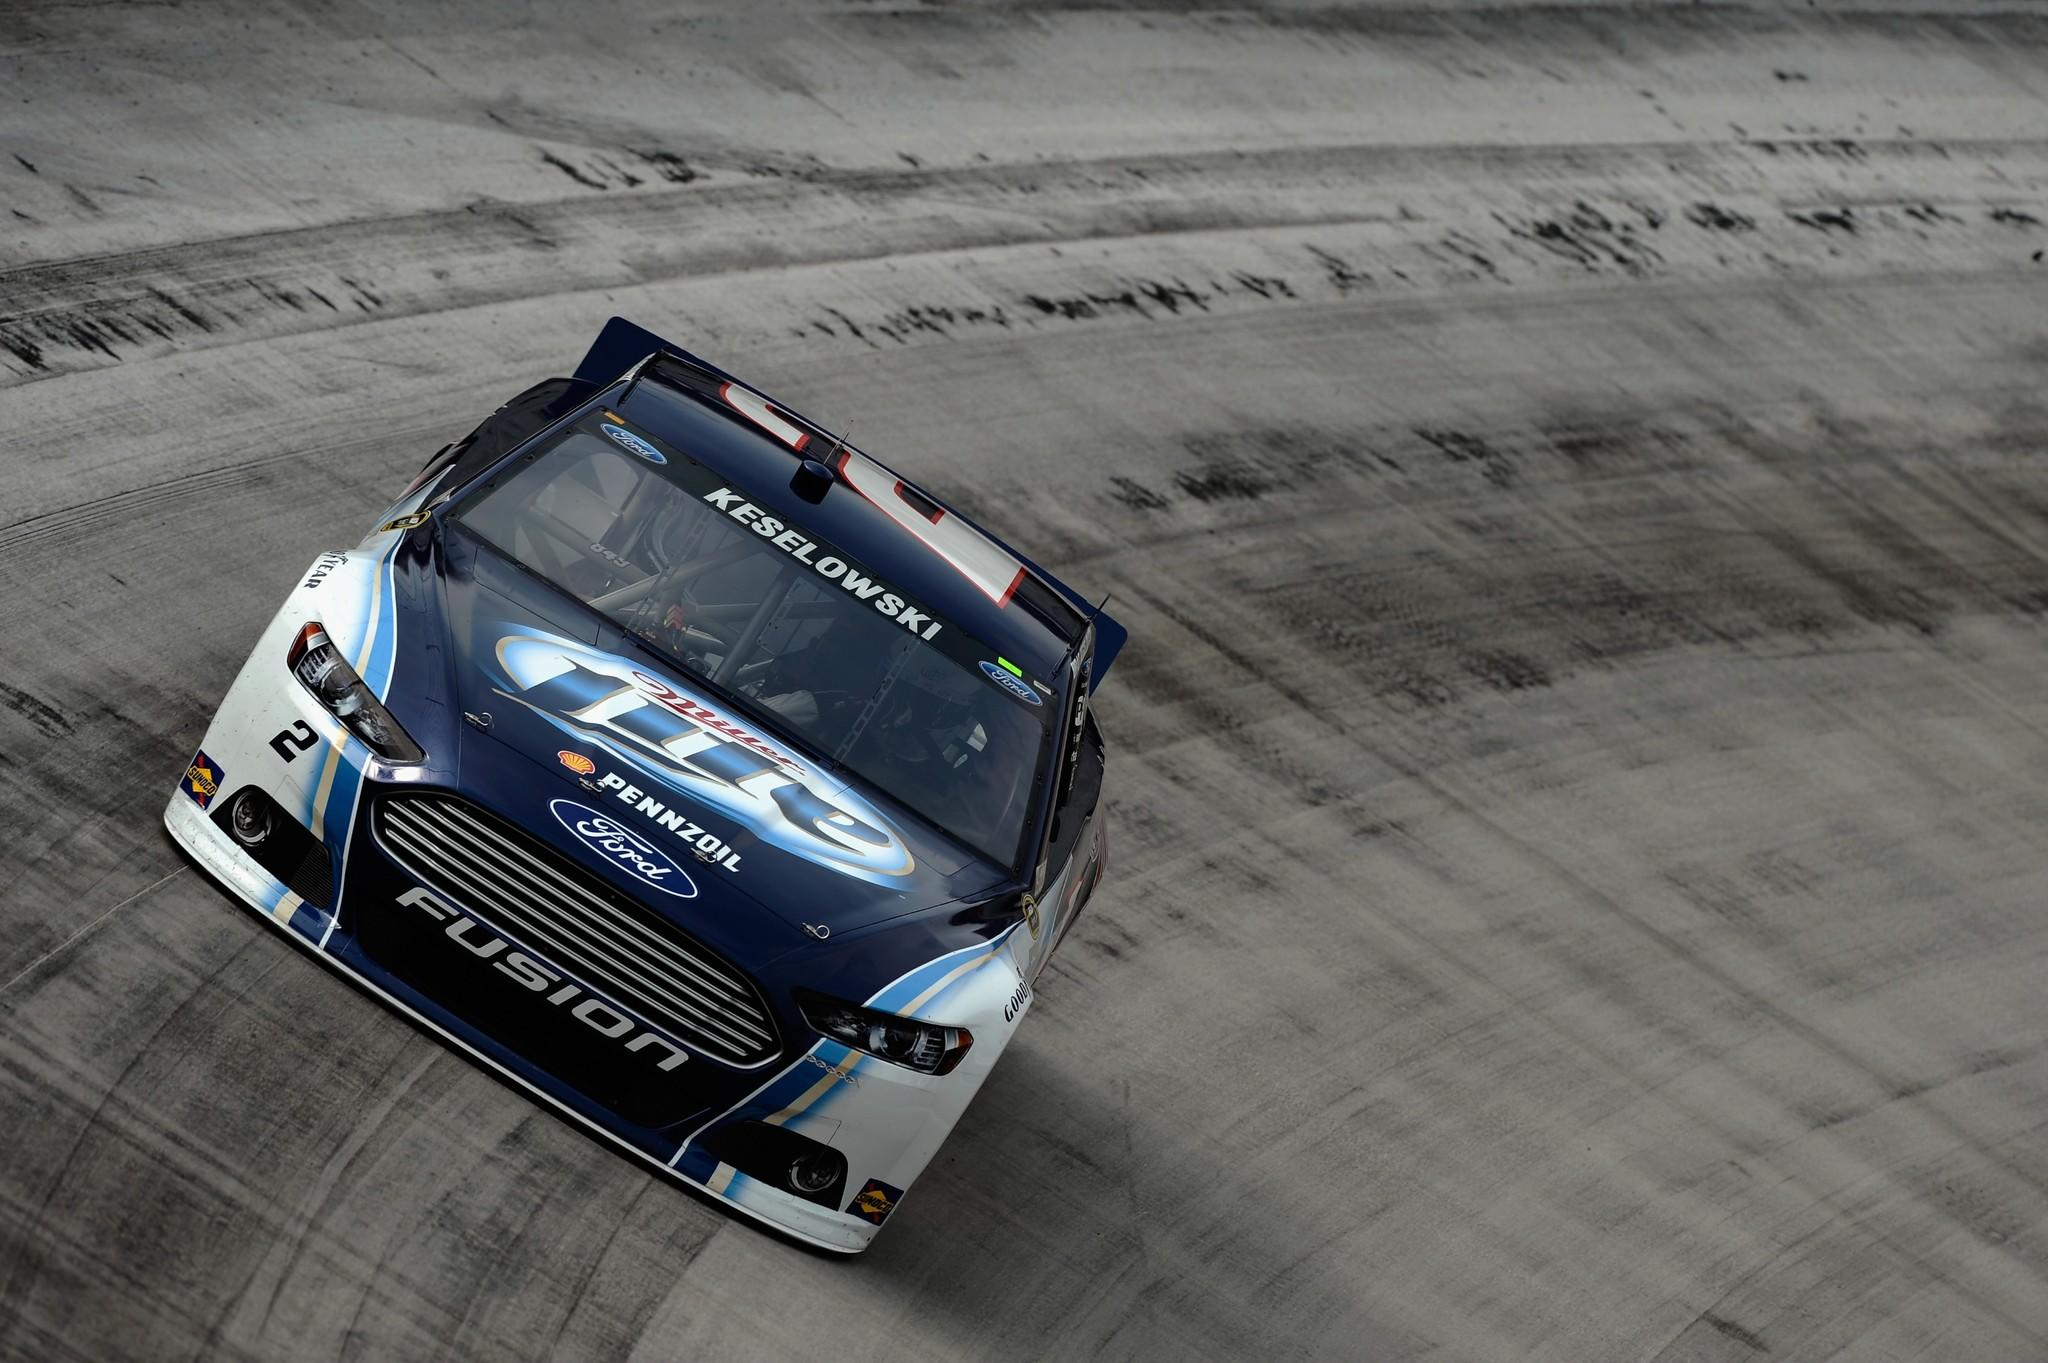 Brad Keselowski, driver of the #2 Miller Lite Ford, practices for the NASCAR Sprint Cup Series IRWIN Tools Night Race at Bristol Motor Speedway on August 23, 2013 in Bristol, Tennessee.